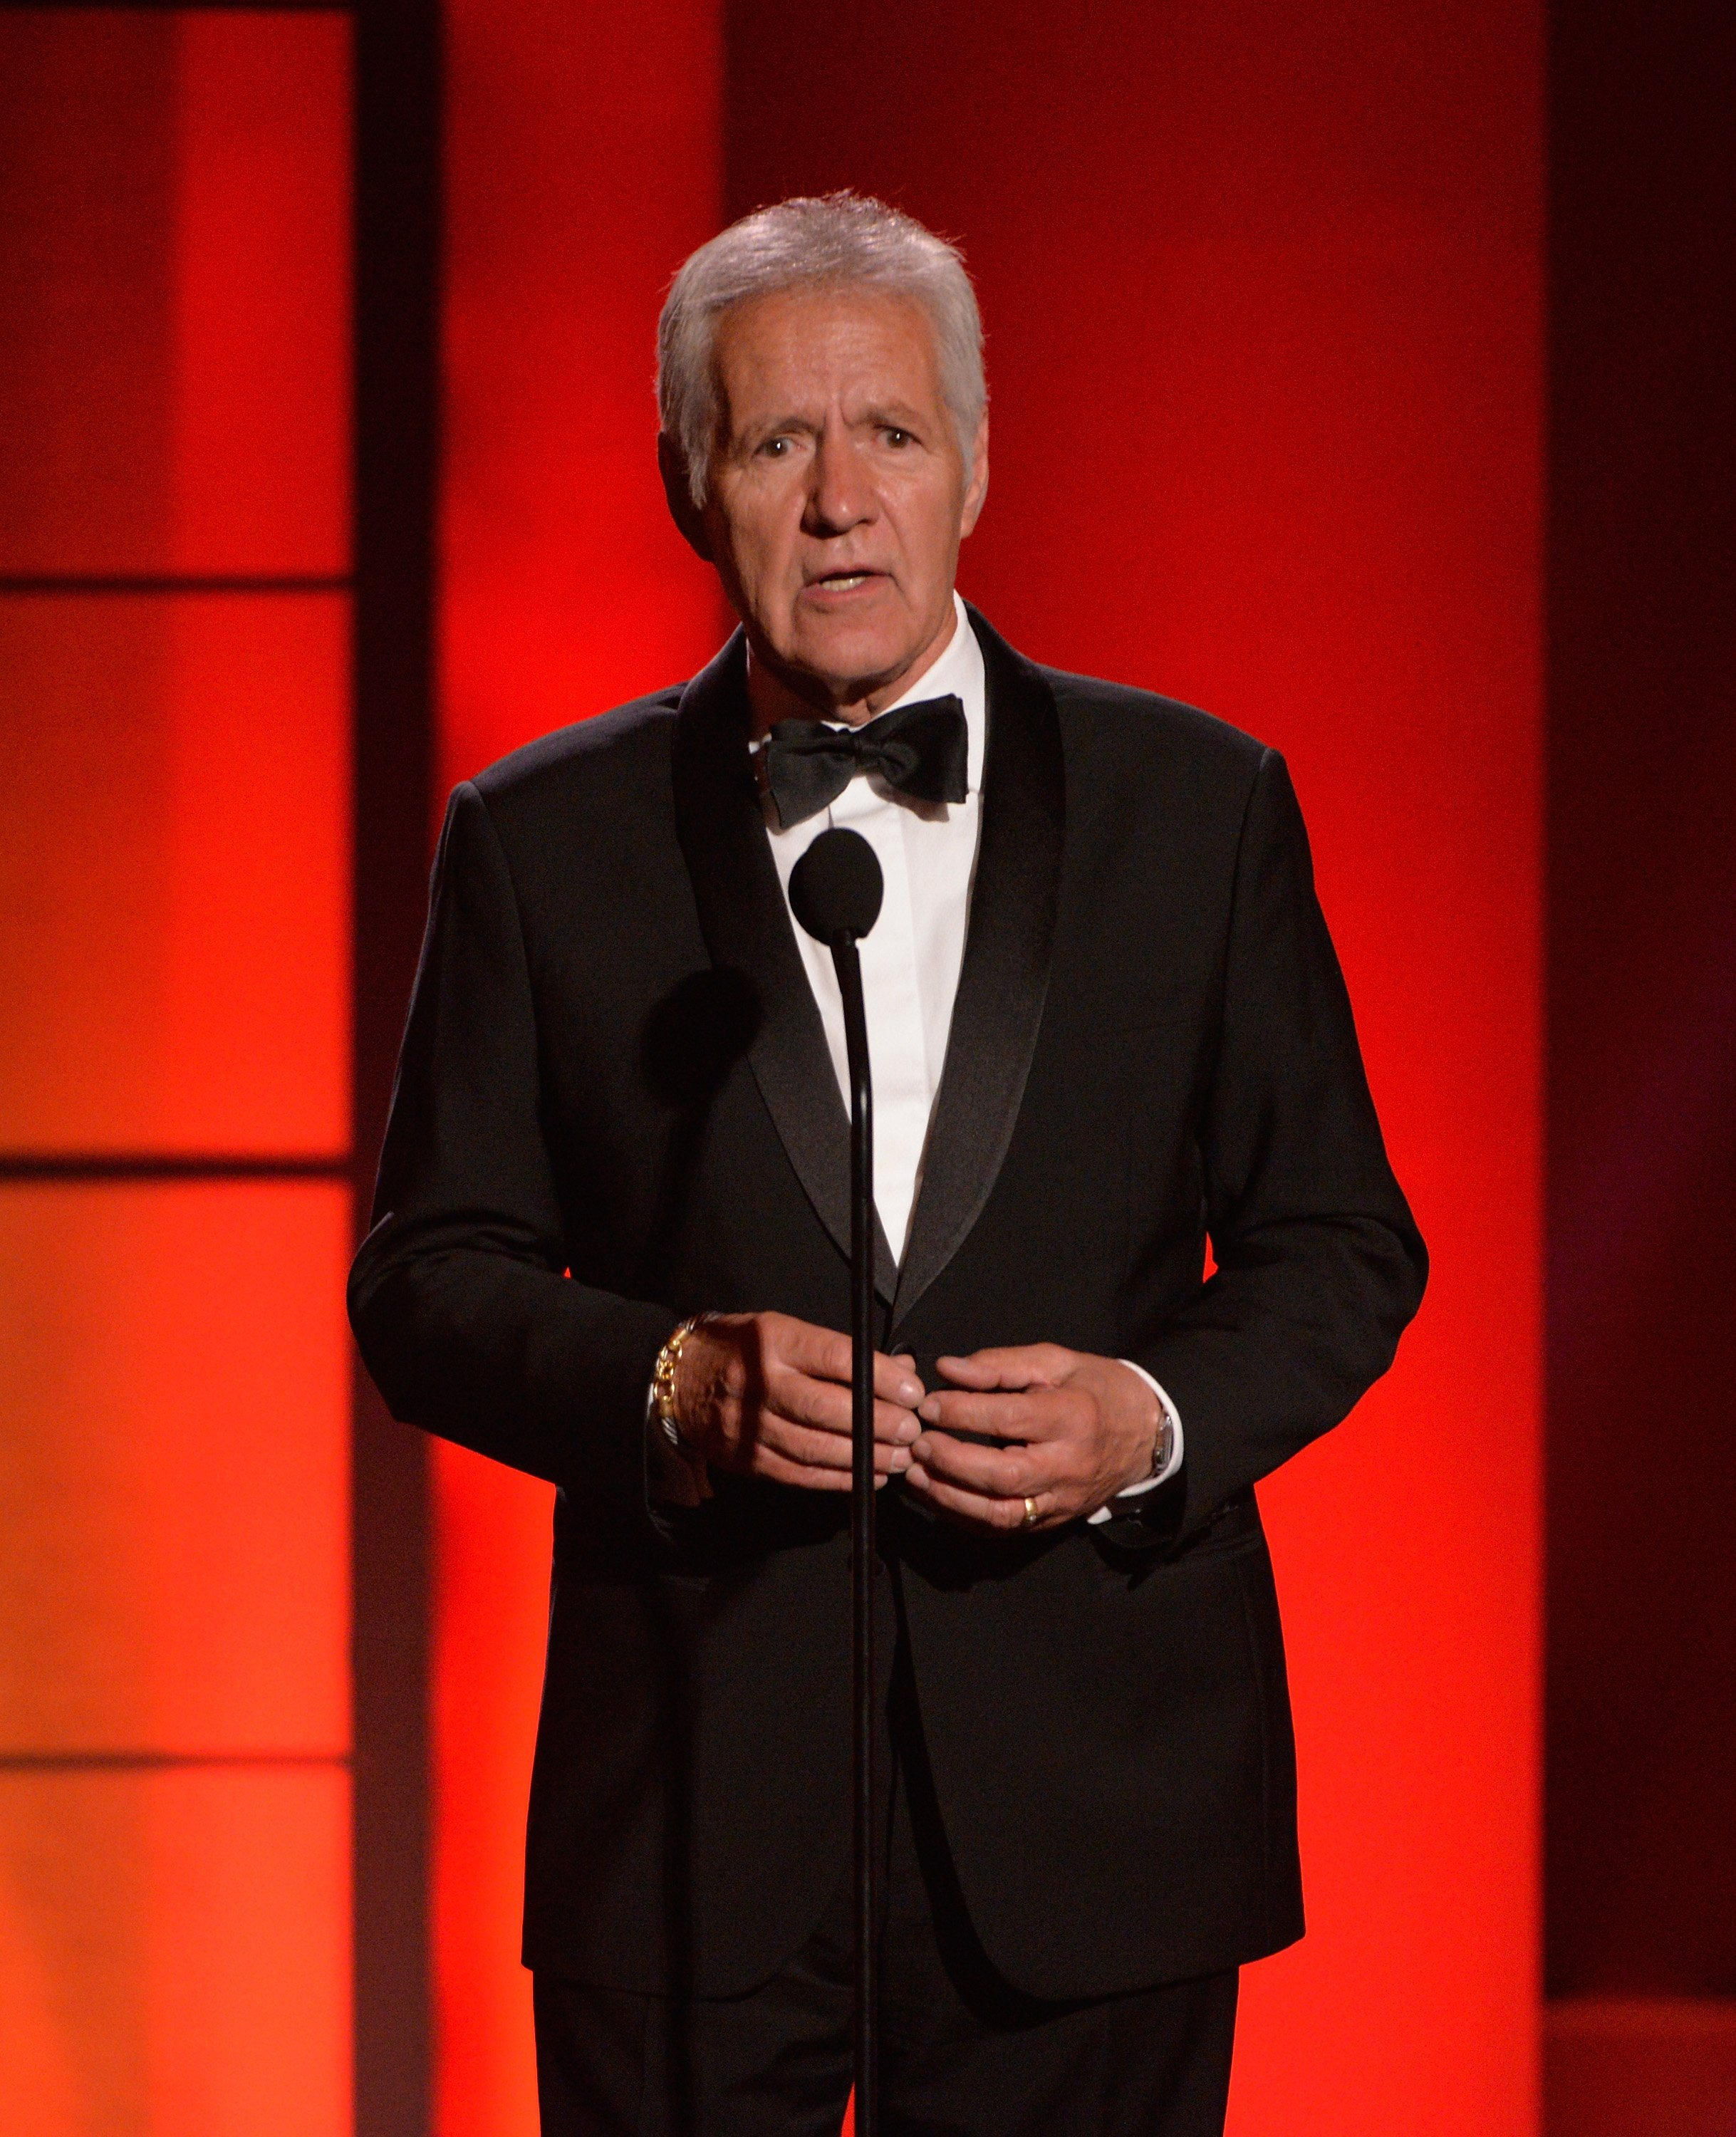 Alex Trebek delivering a speech at the 44th annual Daytime Emmy Awards in Pasadena, California | Photo: Getty Images